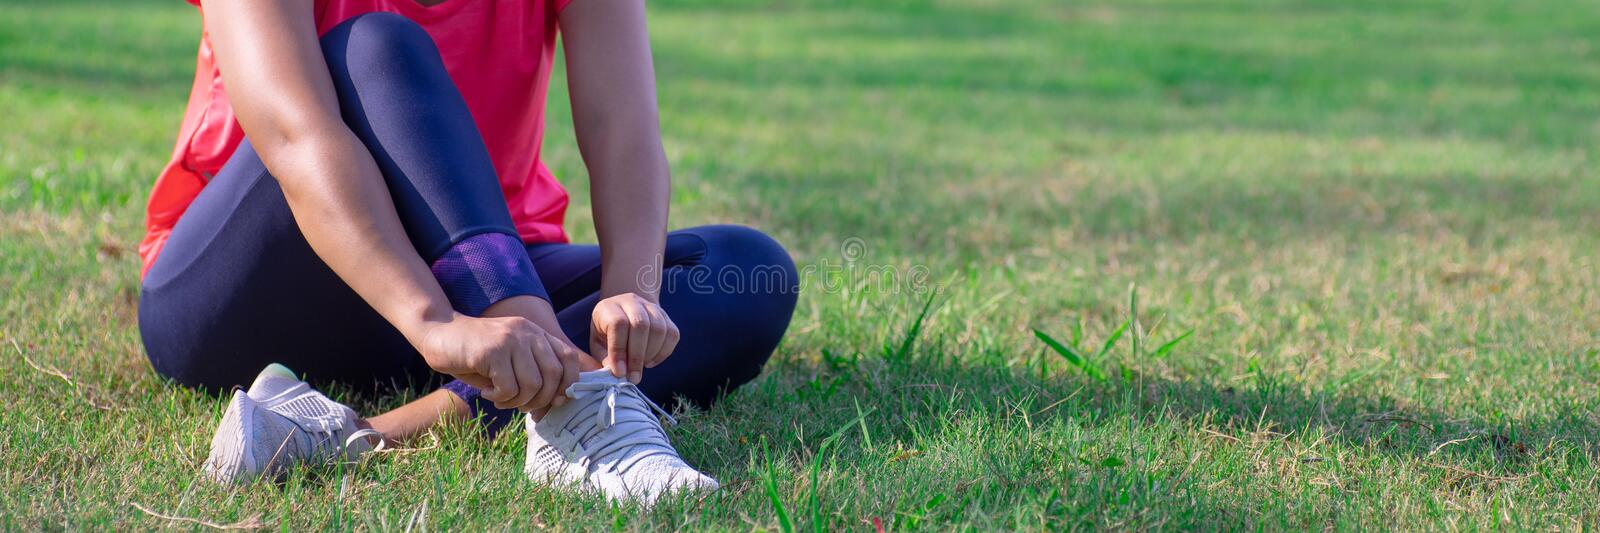 Female hands adjust her running shoes before practice. Runner getting ready for training. Sport active lifestyle concept. Outdoor. Workout concept for web stock images